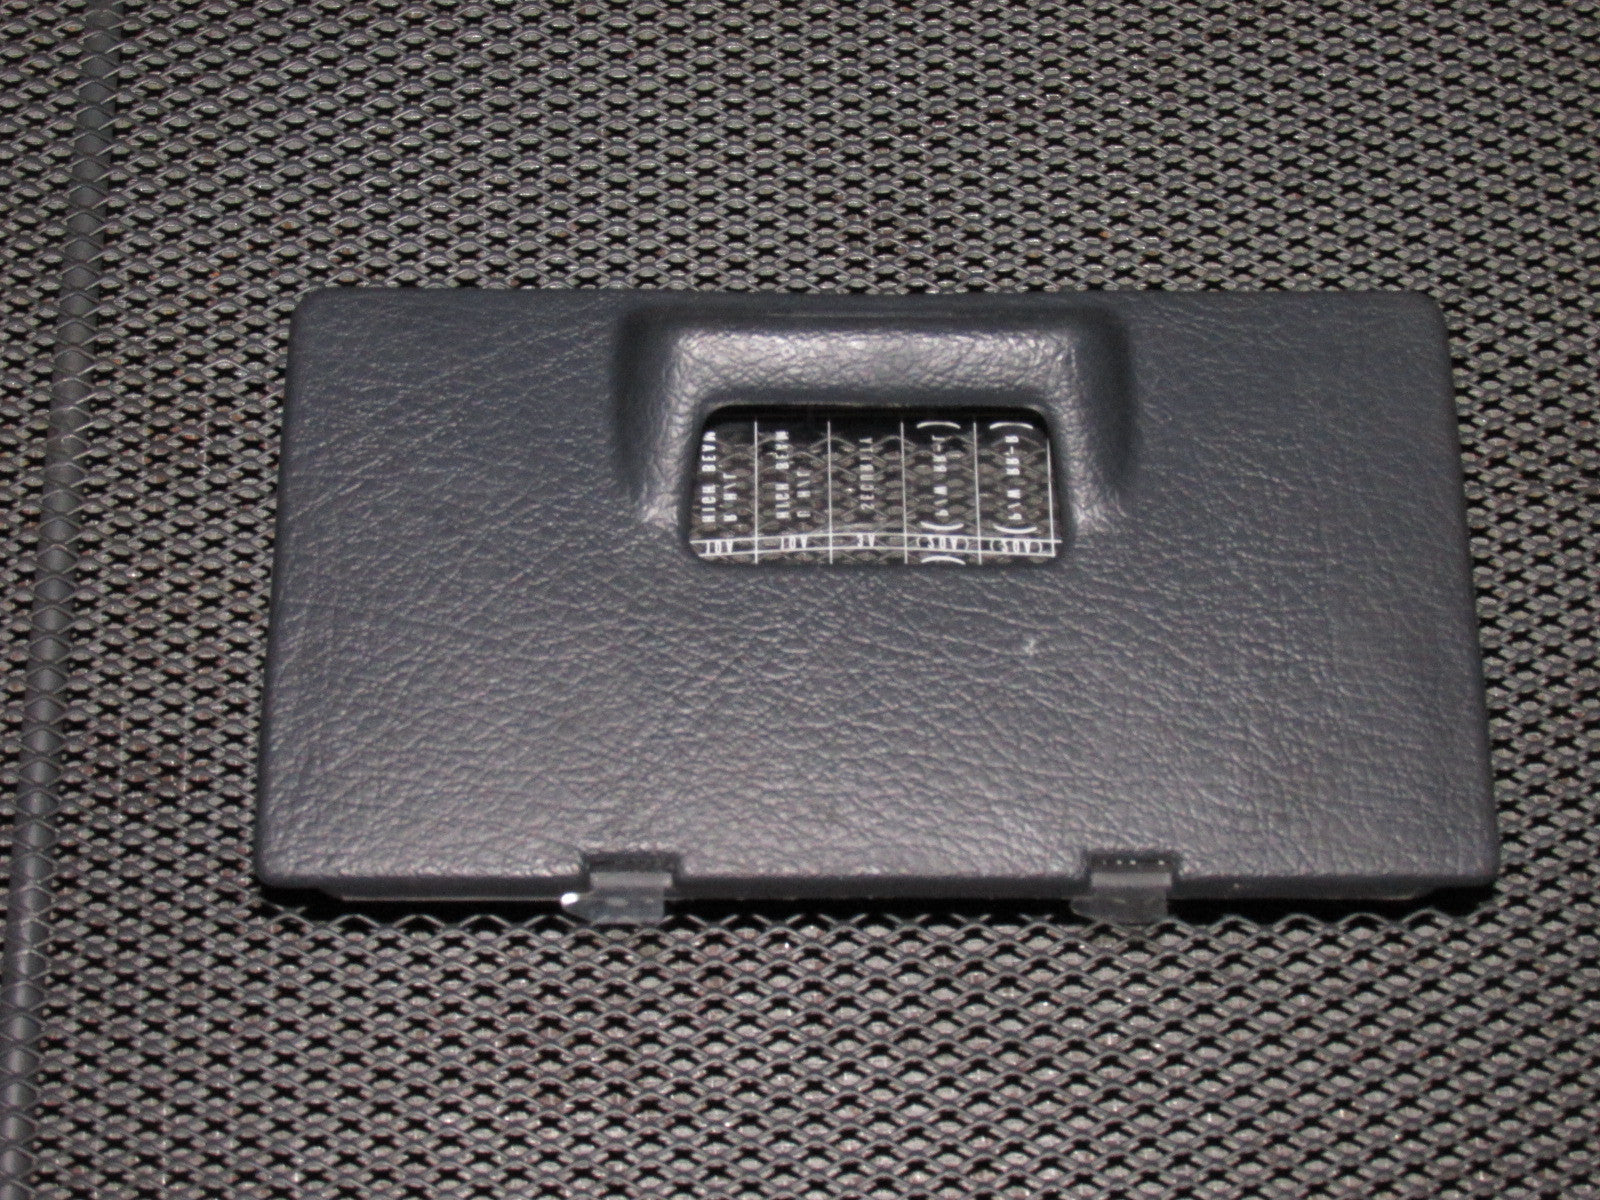 ... 96 97 98 99 00 Honda Civic OEM Interior Fuse Box Cover